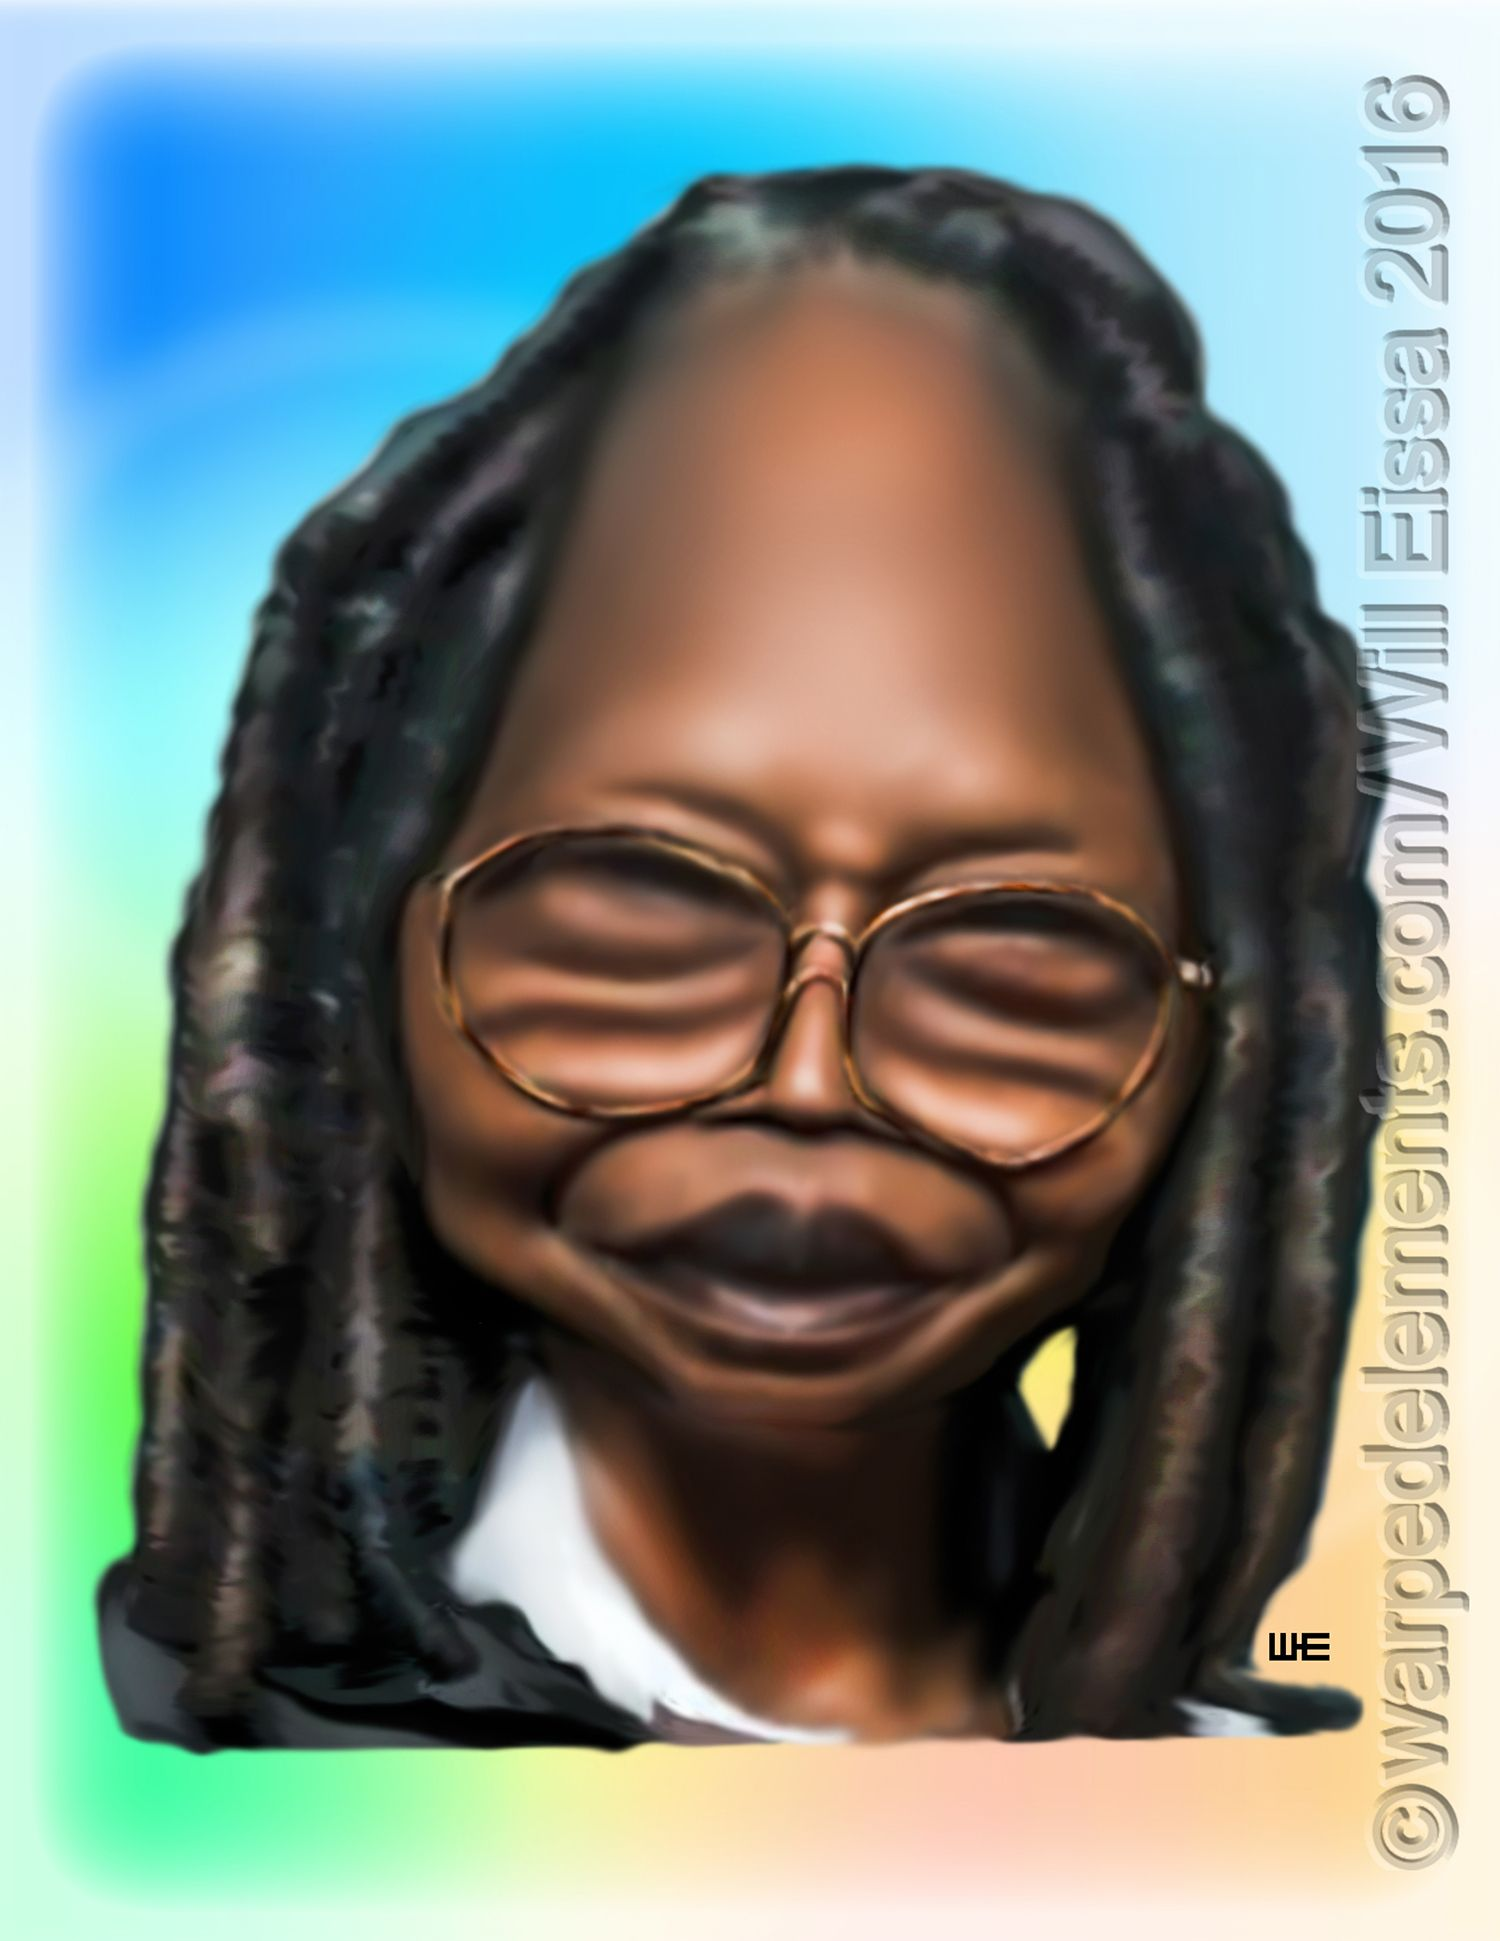 Whoopi Goldberg Celebrity Caricatures Caricature Celebrity Drawings